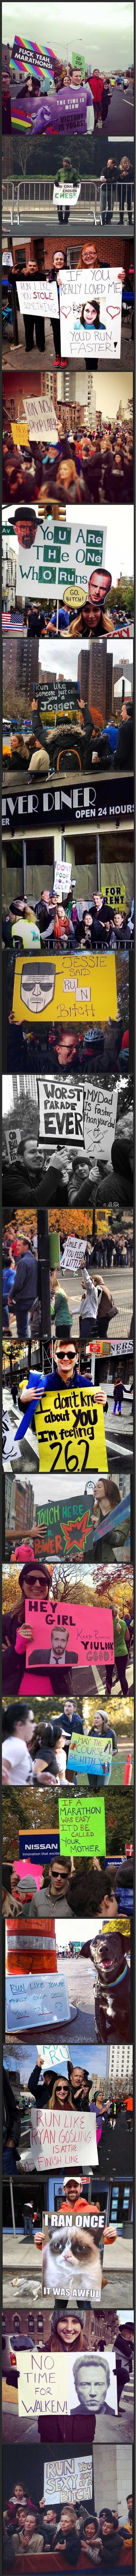 funny-picture-marathon-runners-signs